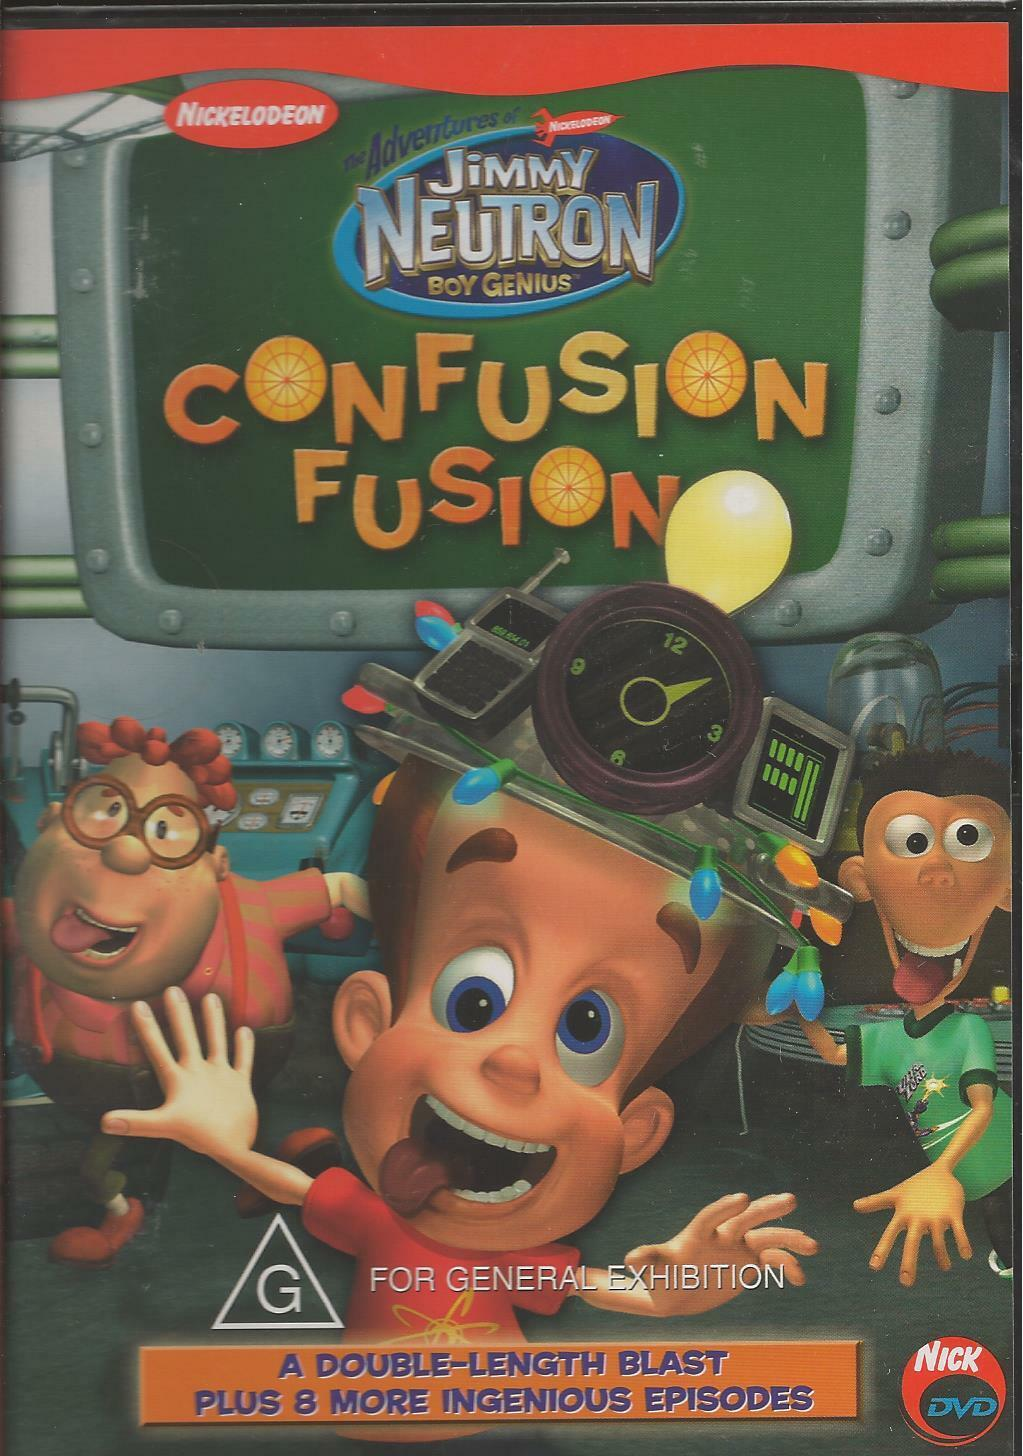 JIMMY NEUTRON CONFUSION Fusion New DVD Region 4 Sealed - $6.18 ...